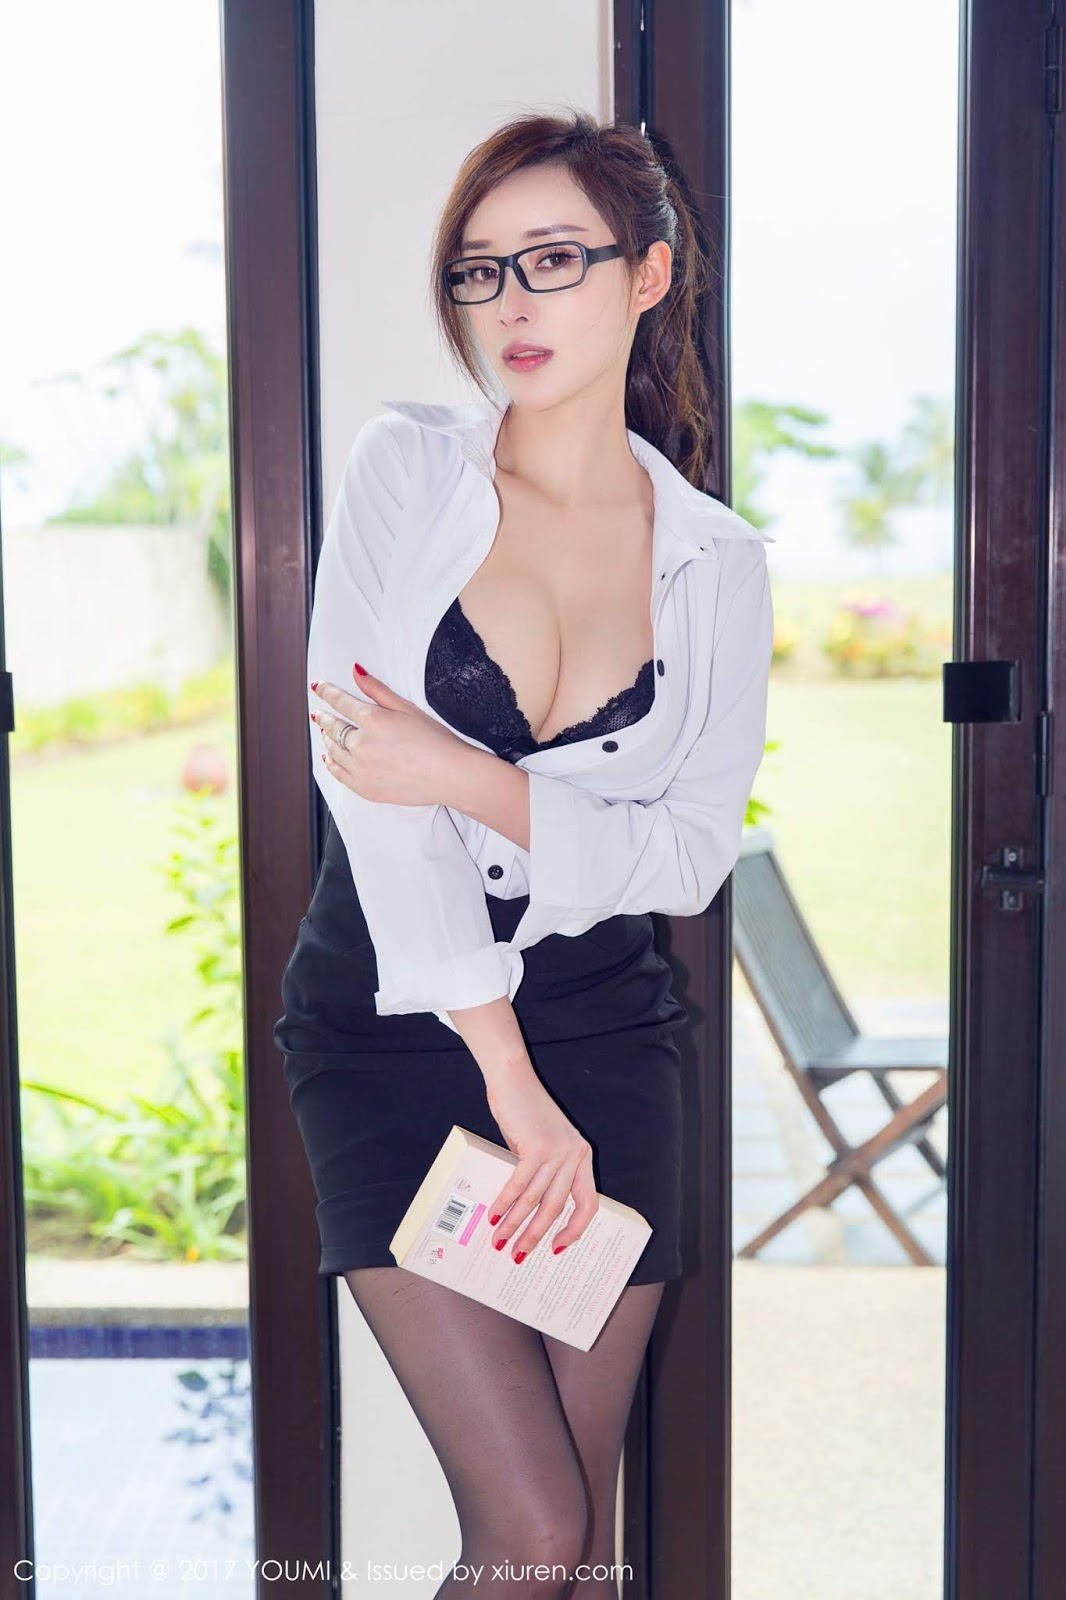 Chinese Girl 土肥圆矮挫穷  YOUMI 031 (51 Pict)